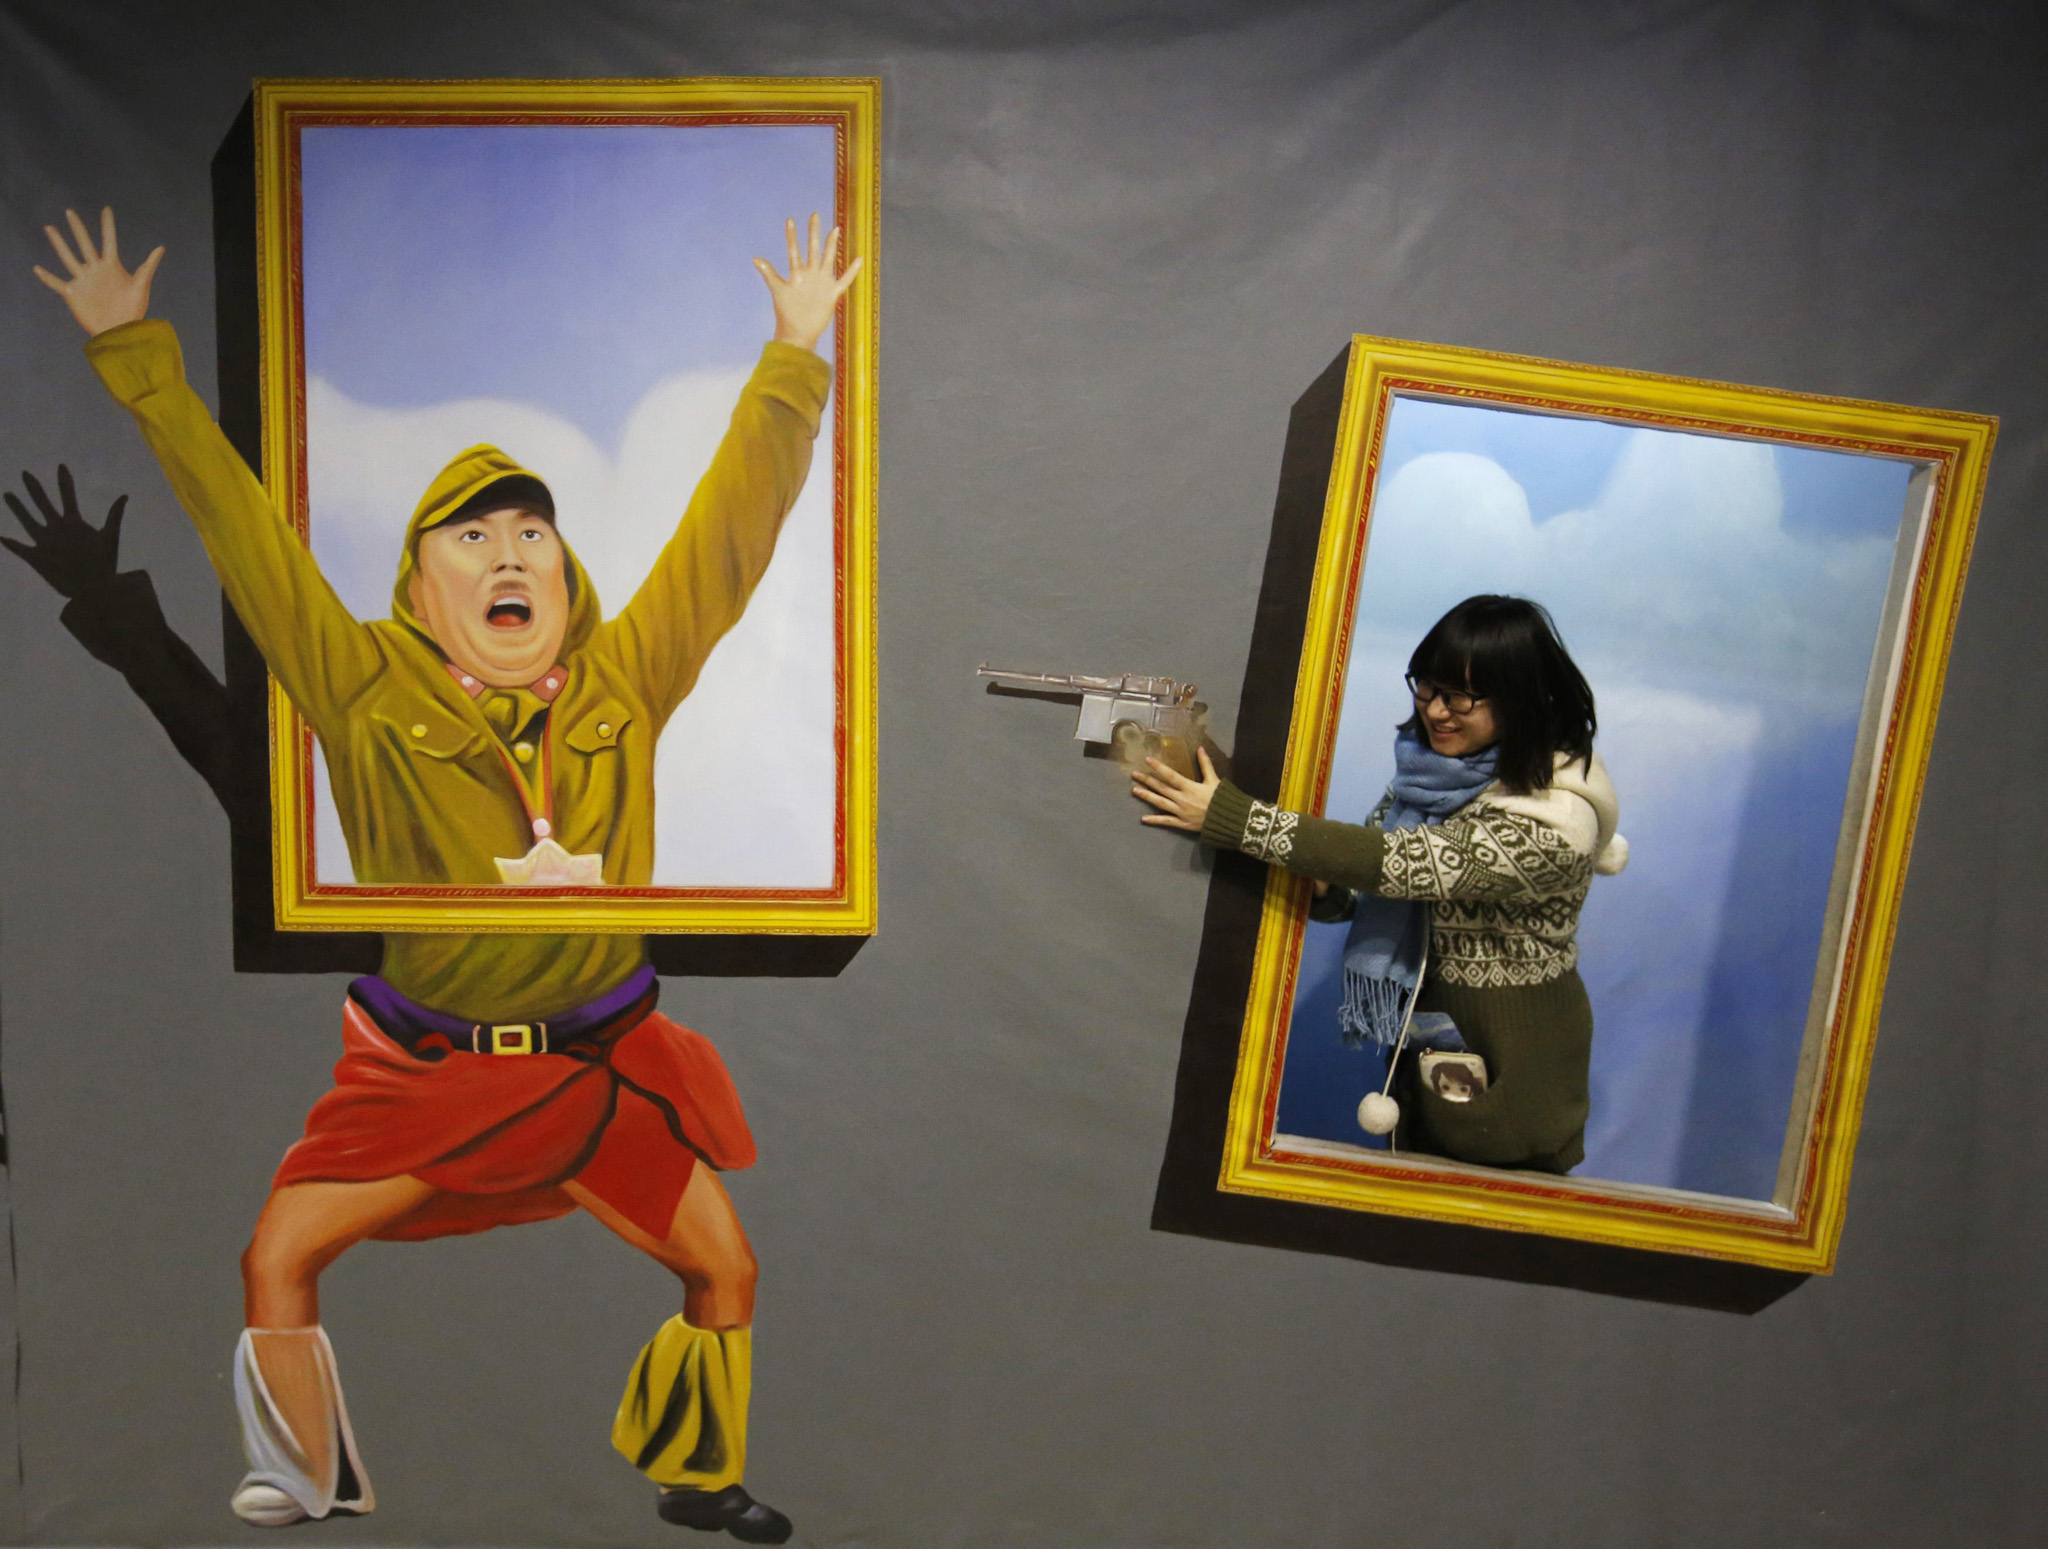 A visitor poses for a photograph in front of a 3D painting depicting a Japanese Imperial army soldier at a 3D art gallery in Beijing...A visitor poses for a photograph in front of a 3D painting depicting a Japanese Imperial army soldier at a 3D art gallery in Beijing January 16, 2015. The gallery attracts visitors with various 3D paintings and installations depicting world famous political